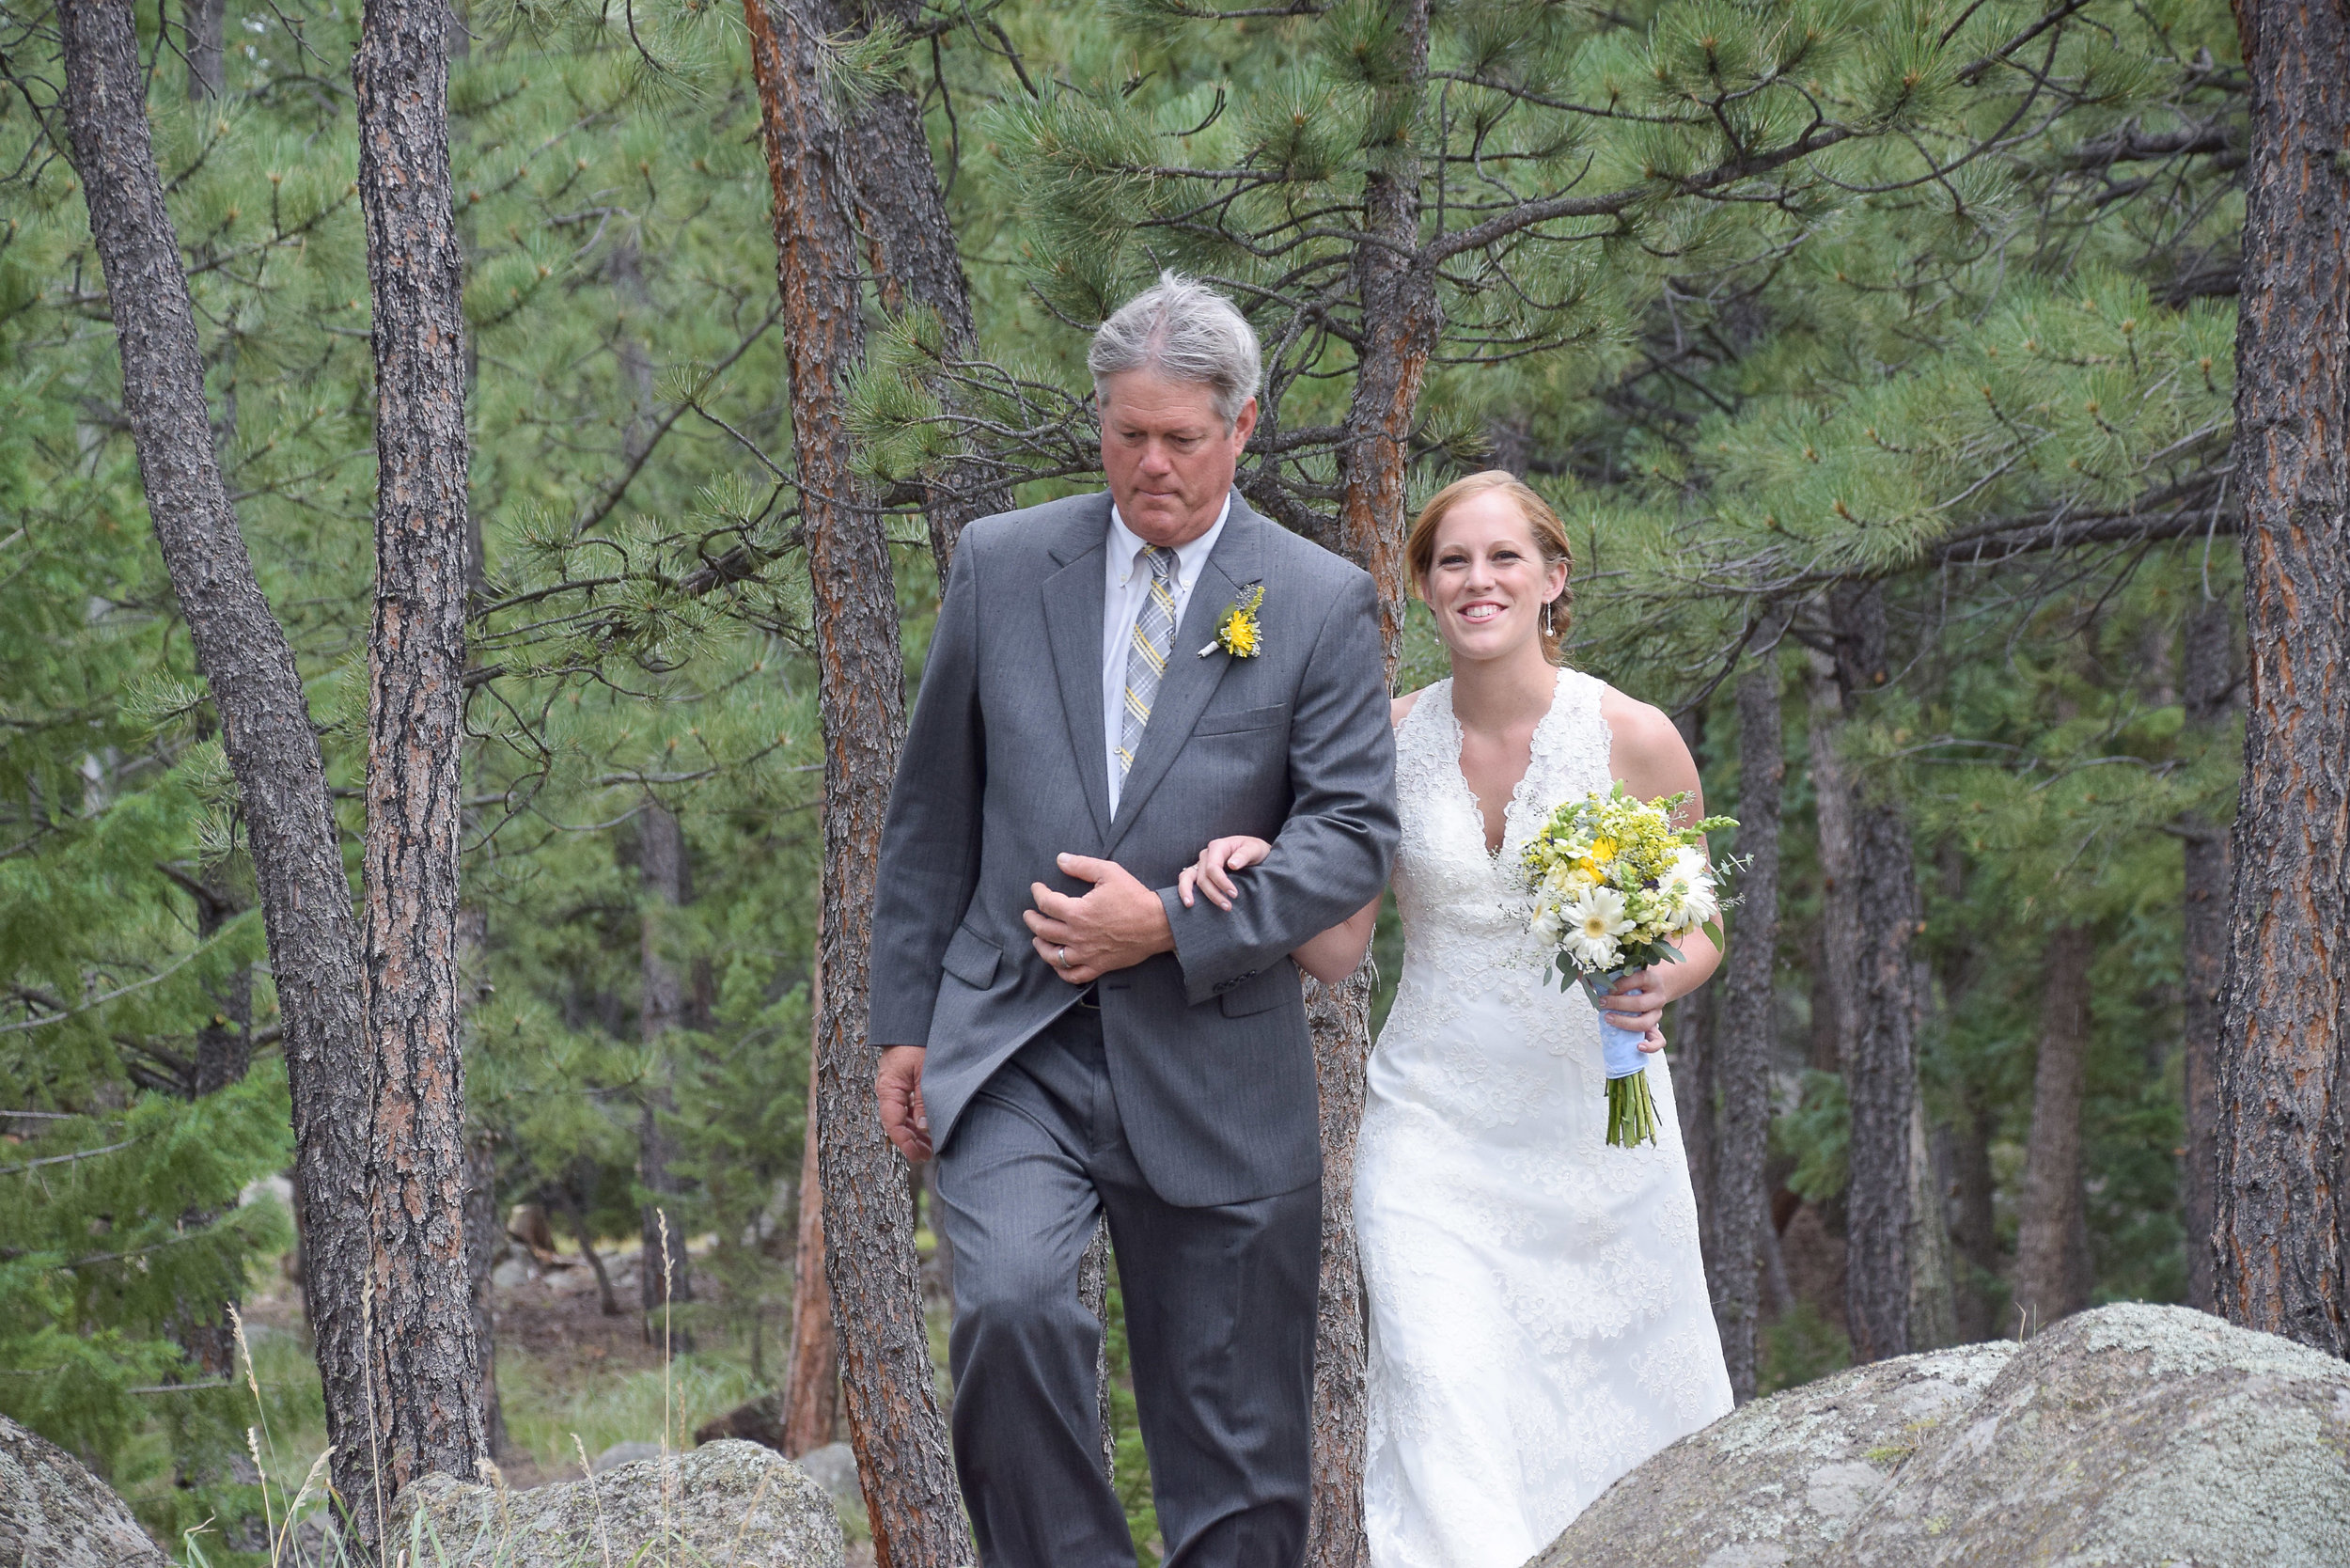 Dad walking daughter to wedding ceremony.